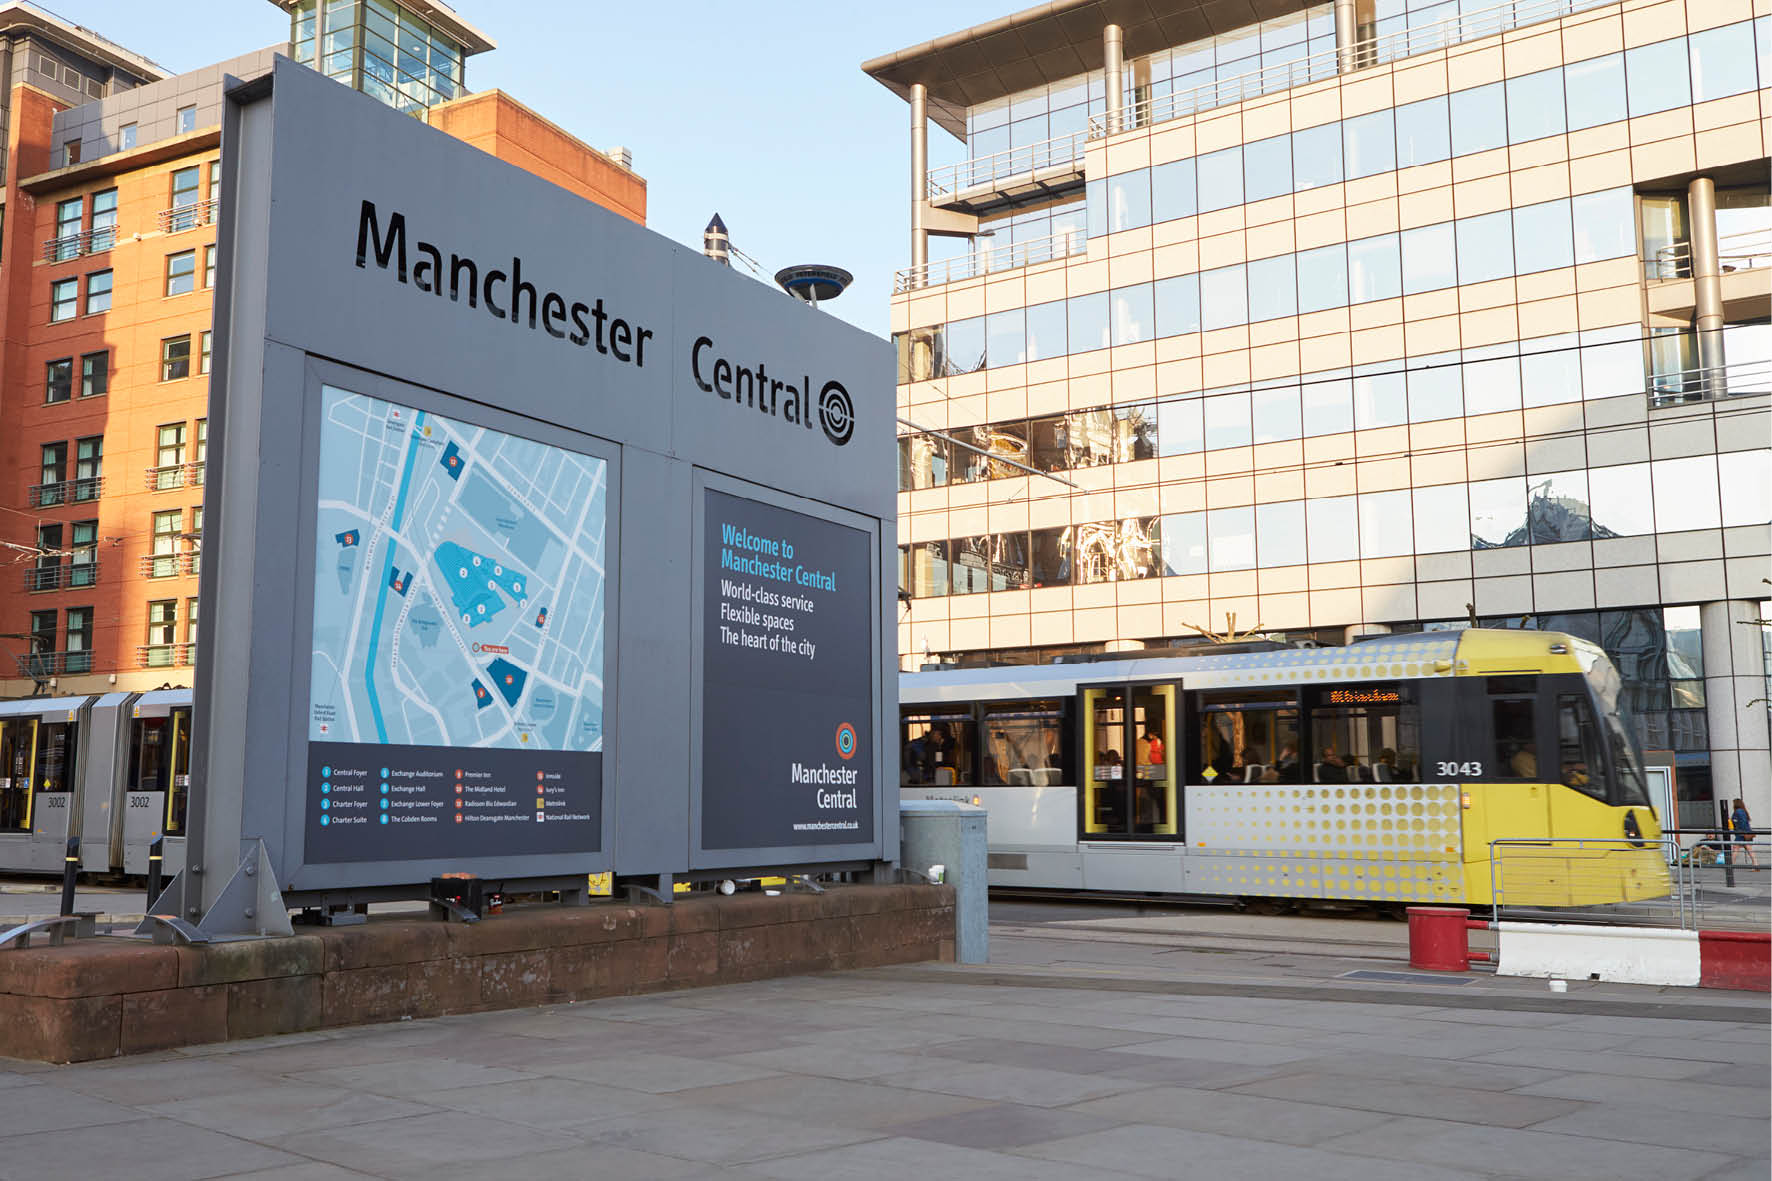 deansgate_square_manchester_74.jpg